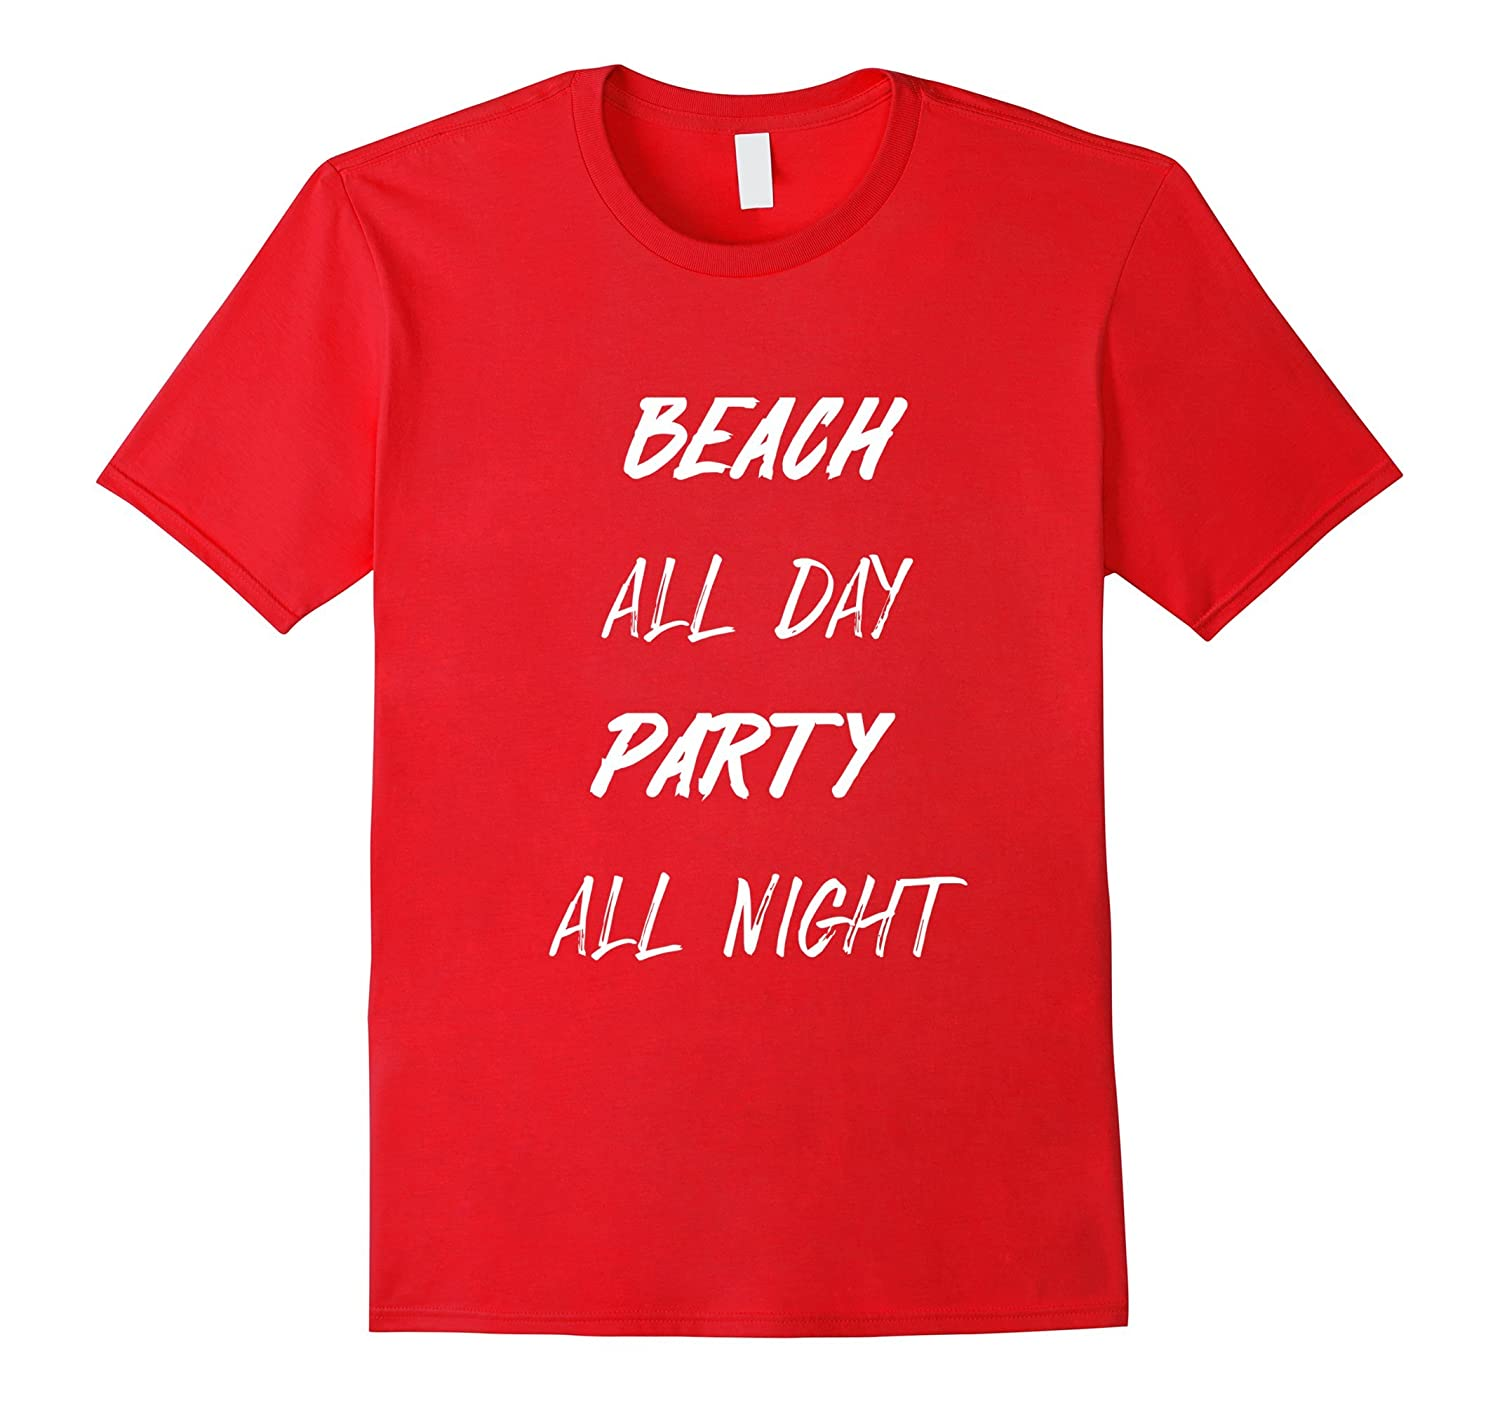 Beach all day Party all night t-shirt